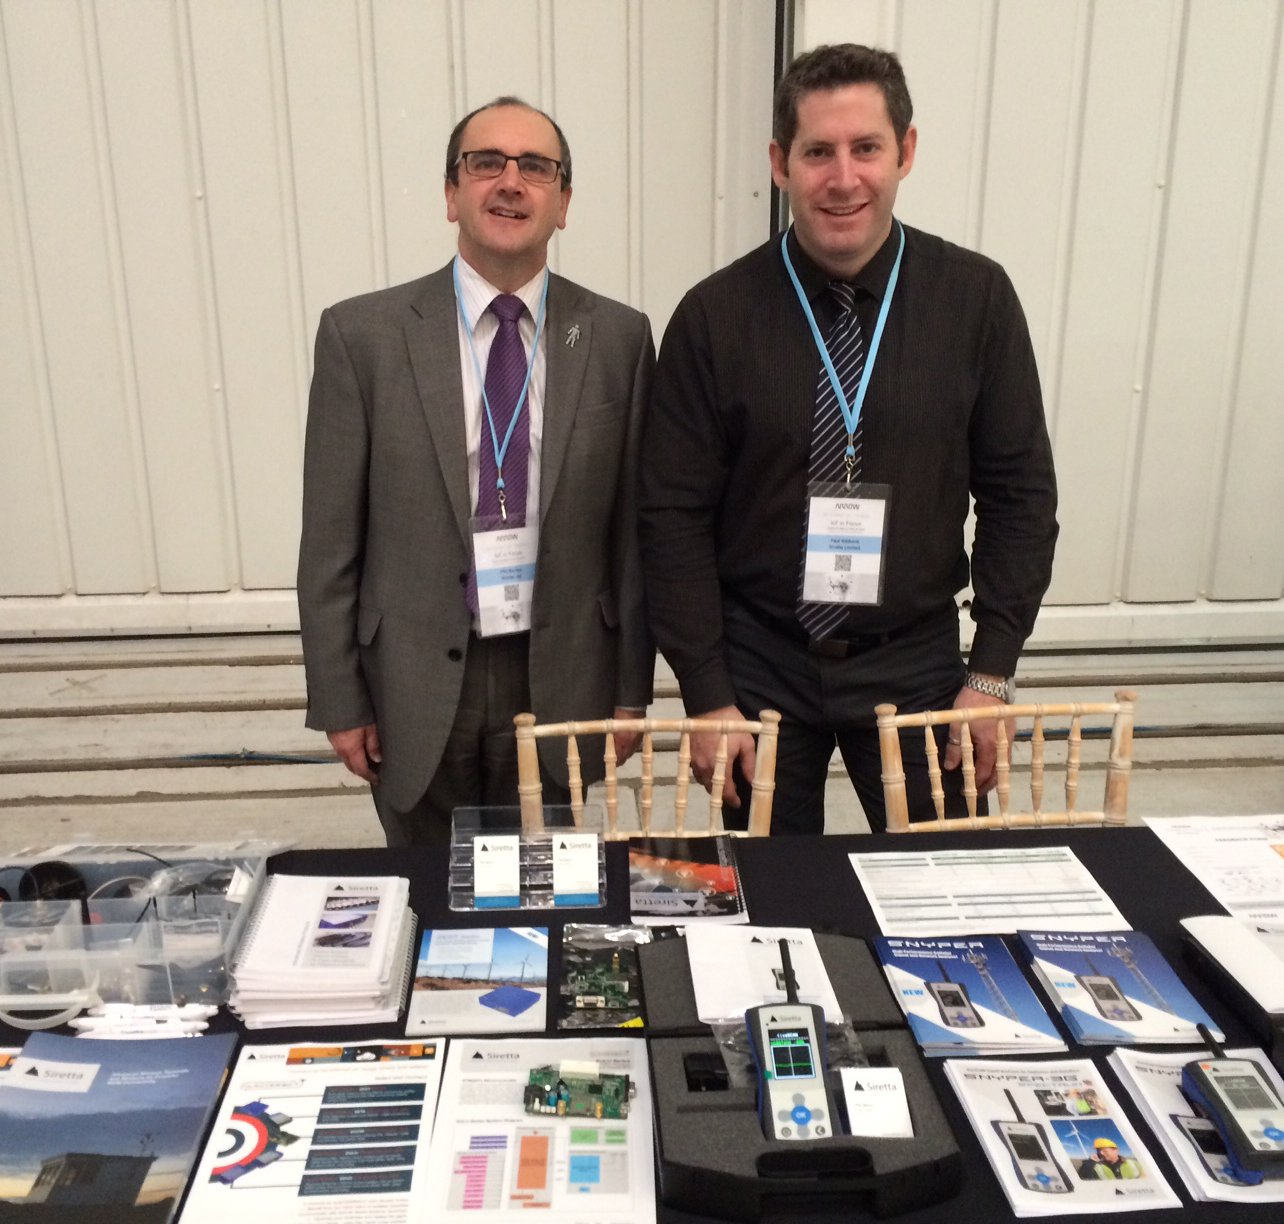 The Siretta team at the Arrow IoT Seminar in Cambridge